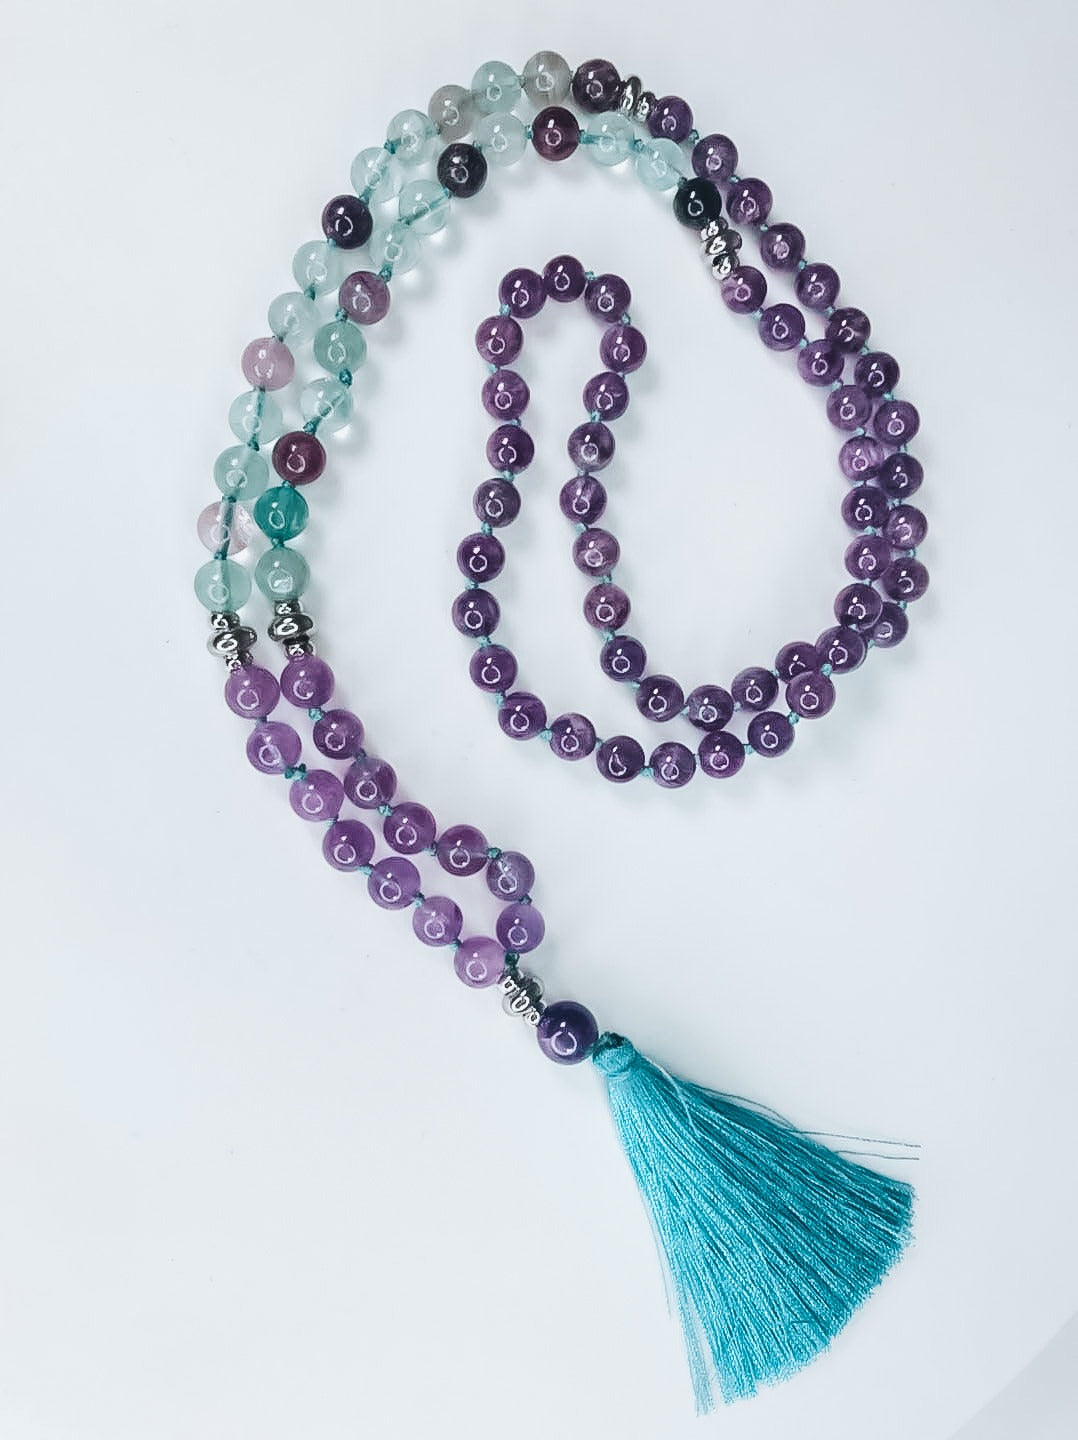 Intuition mala, intuition necklace, third eye mala, third eye chakra necklace, third eye mala necklace, third eye meditation necklace, green fluorite mala, amethyst mala,